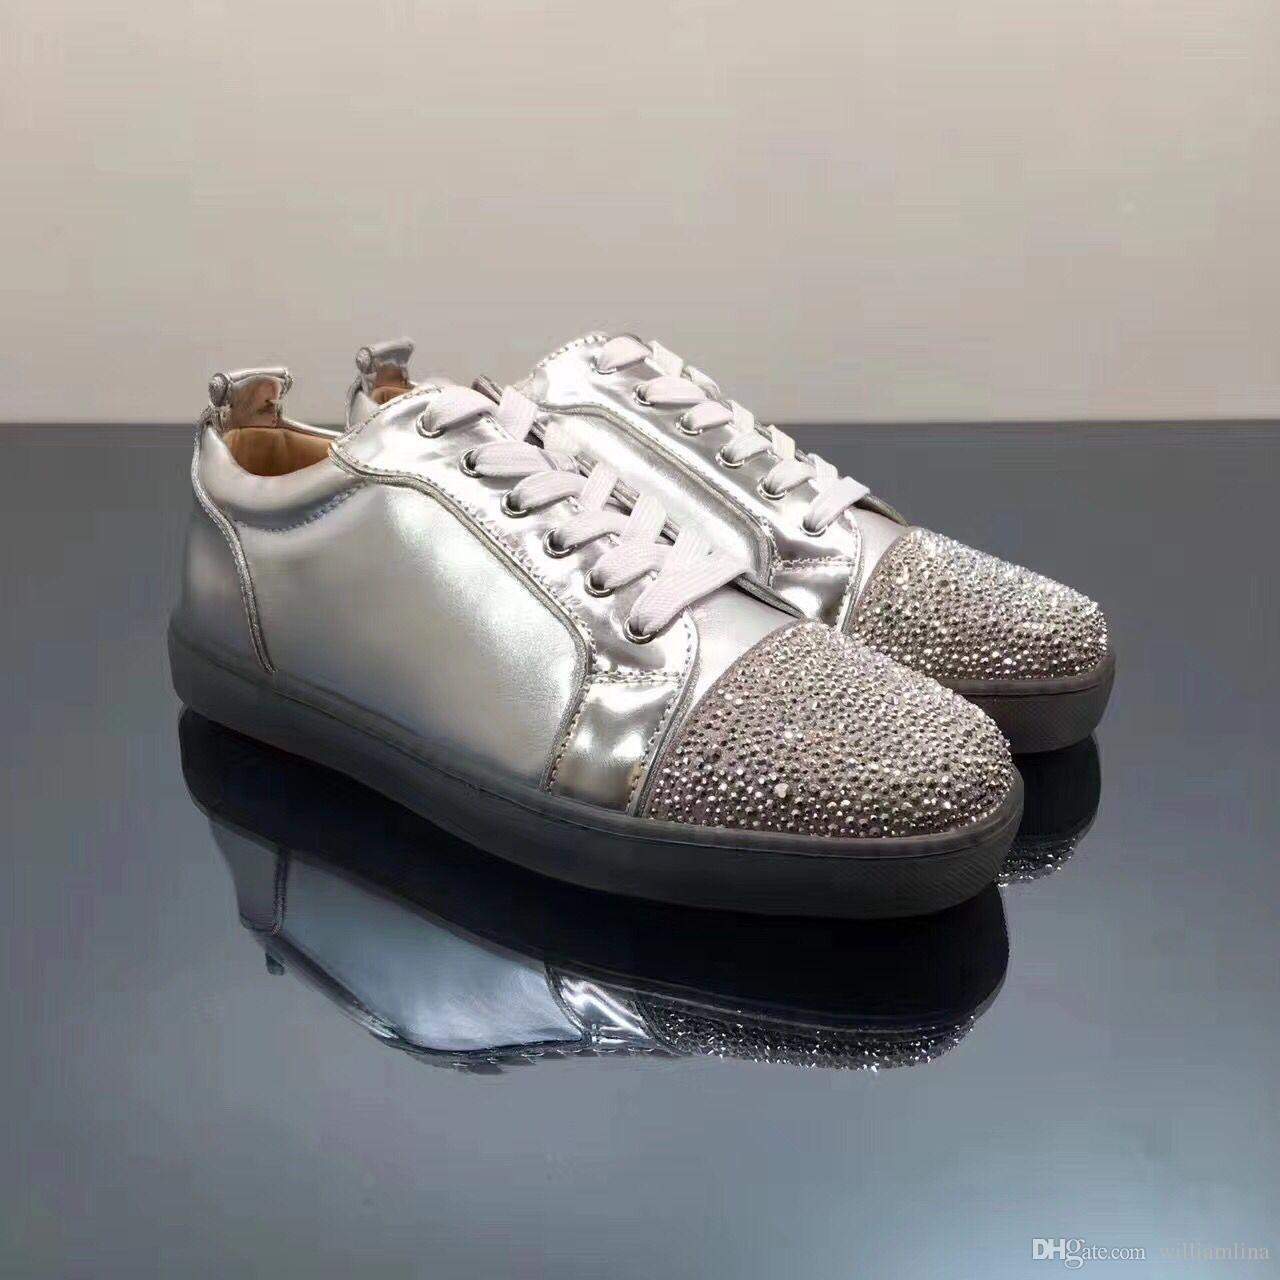 42b0a963123 Low Top Sliver Strass Roound Toe Red Bottom Rhinestone Sneakers ...